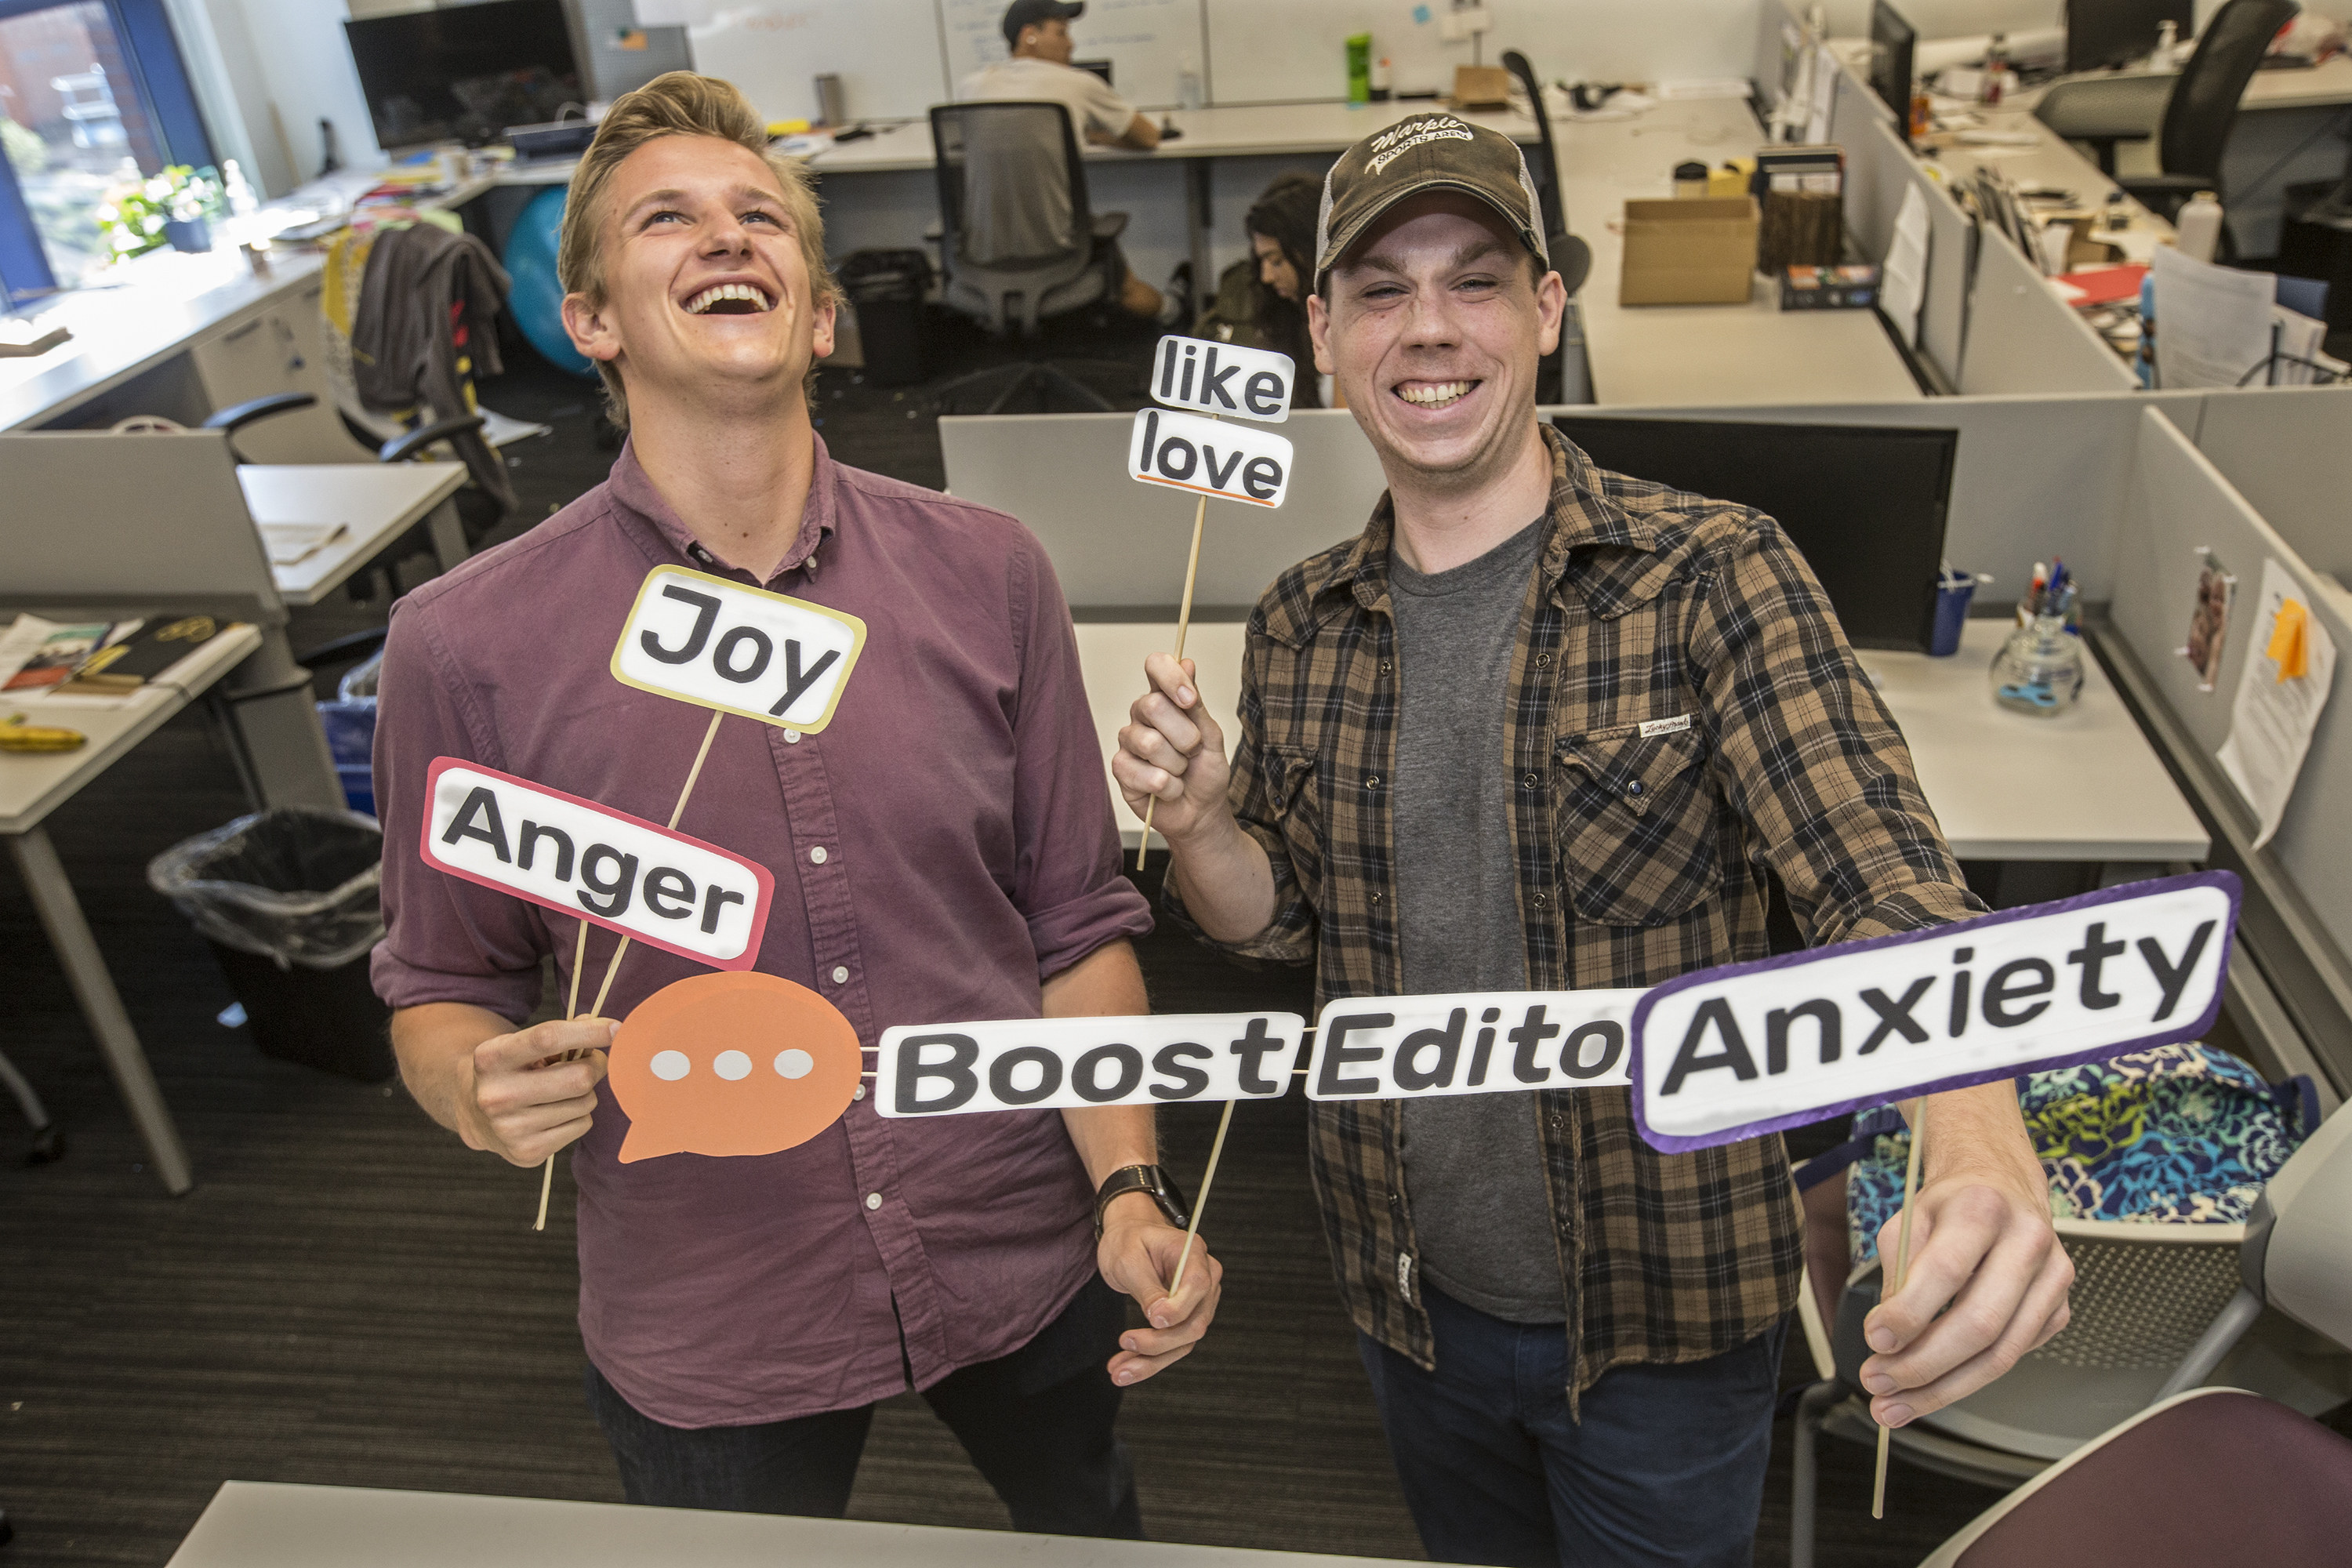 Ethan Bresnahan (left) and Jeff Nowak, two of the cofounders of Boost Linguistics, credit Zeewy with helping build their brand. Their software targets emotionally charged words and suggests more-effective alternatives for marketing materials.